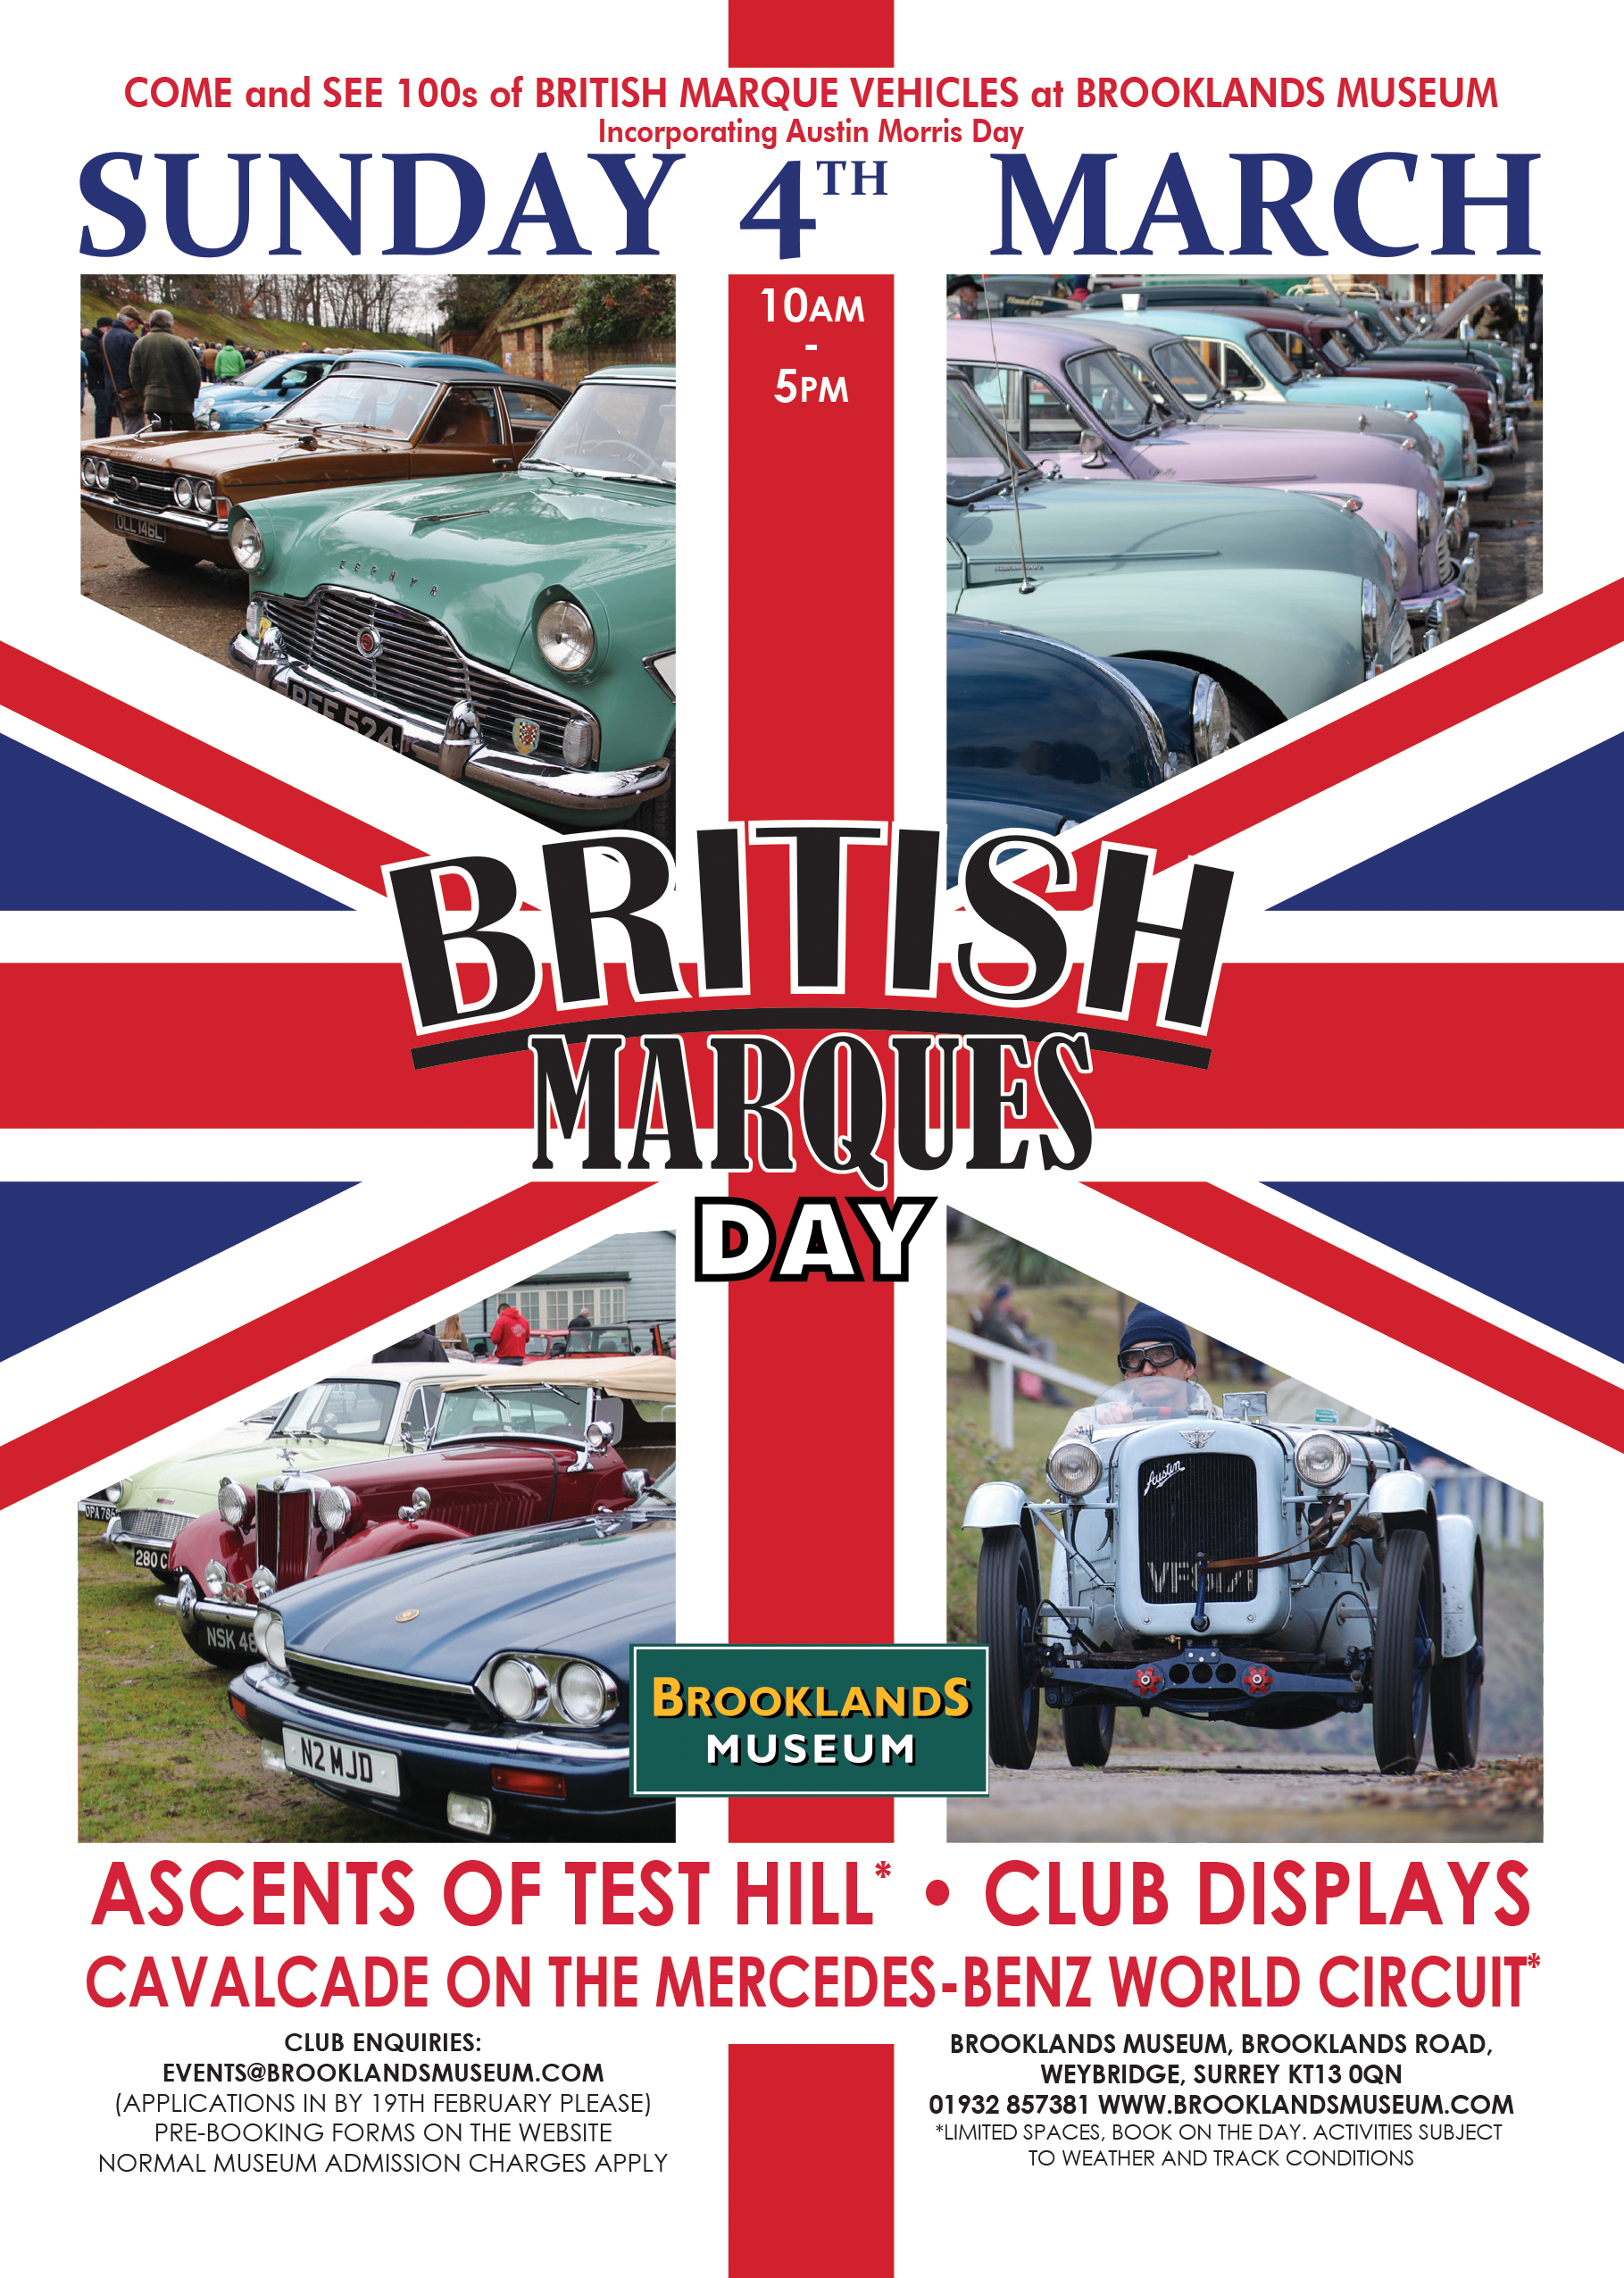 British Marques Day